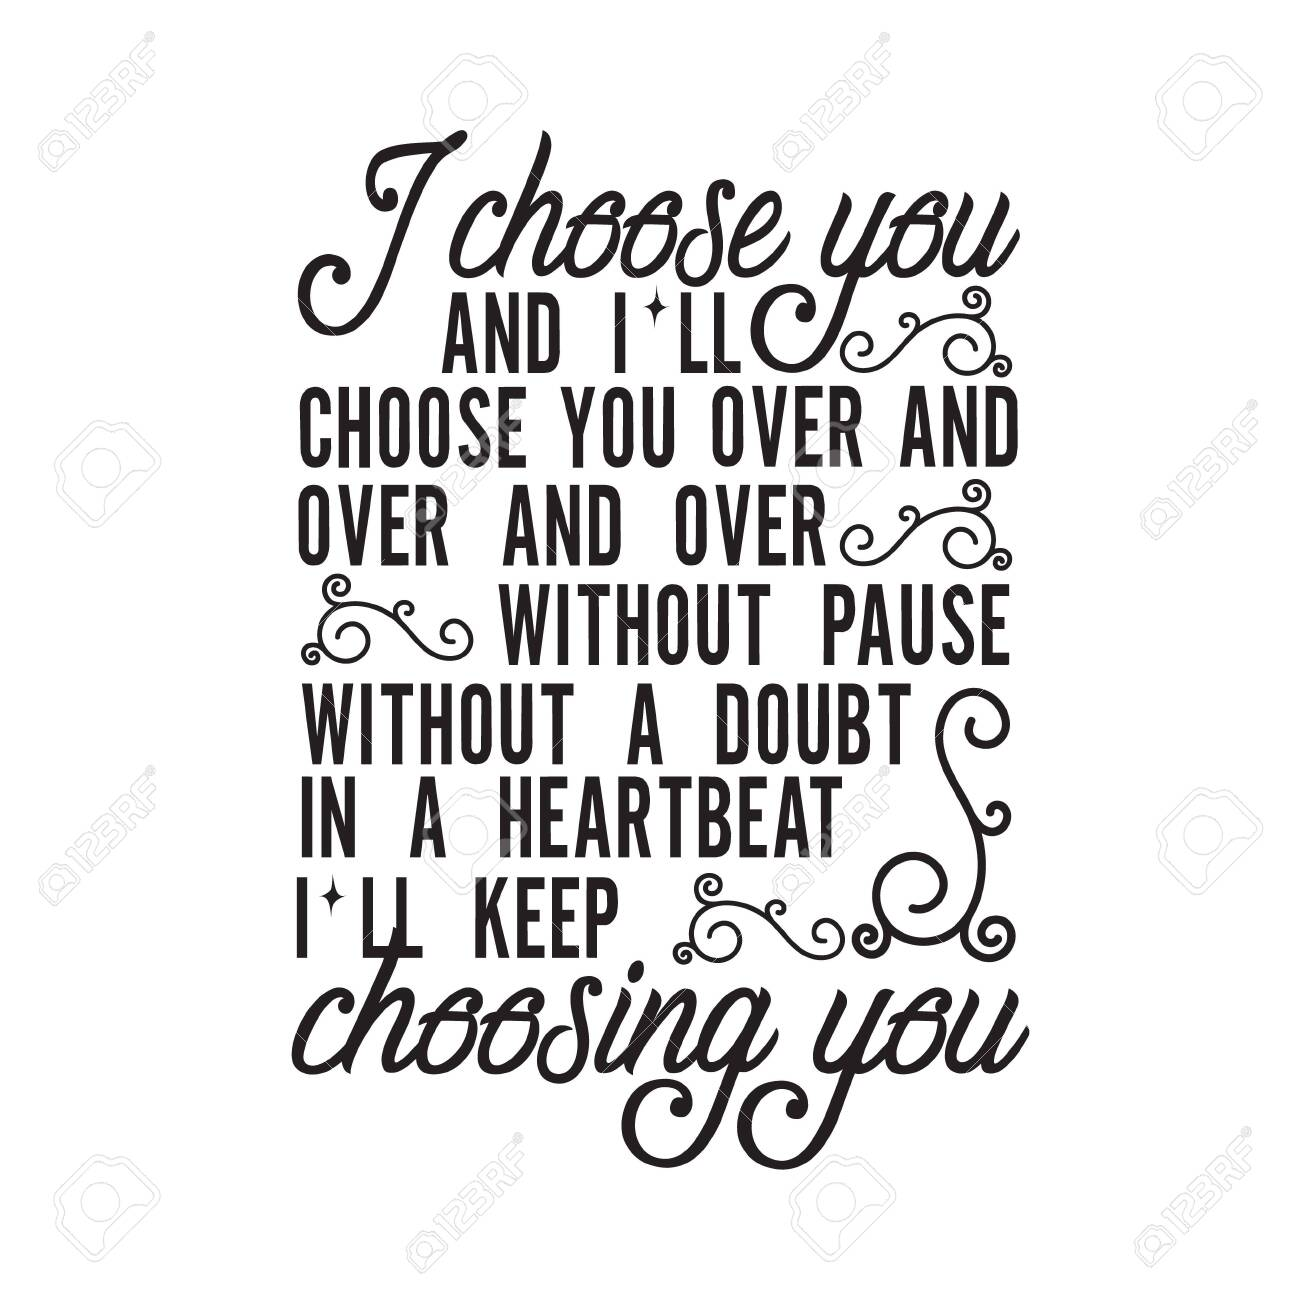 Wedding Quotes And Slogan Good For T Shirt I Choose You And Royalty Free Cliparts Vectors And Stock Illustration Image 152768243